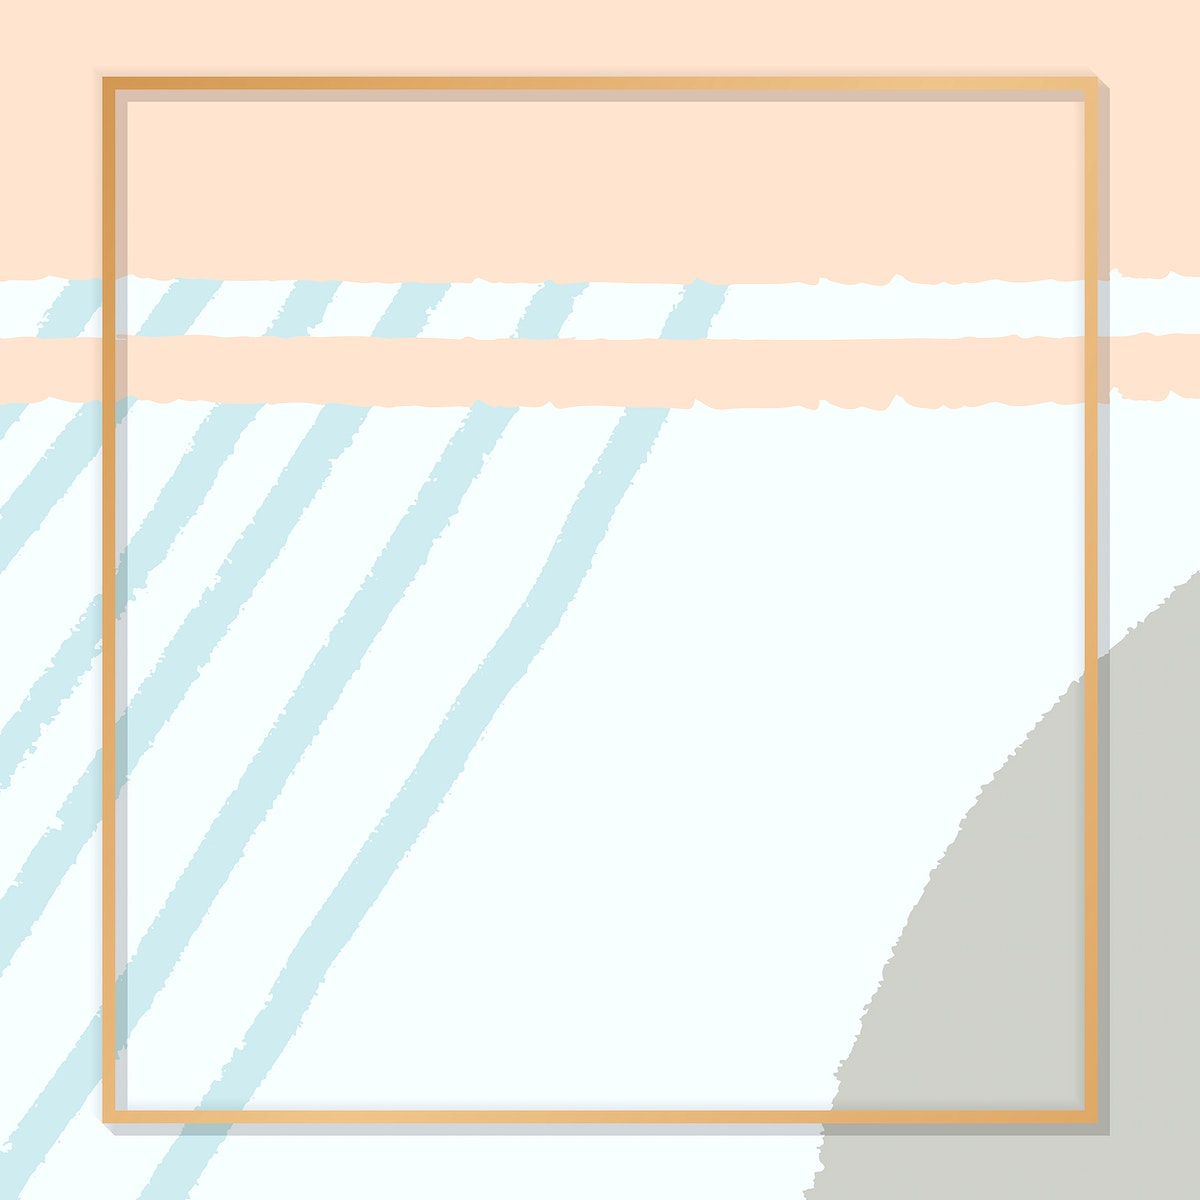 Blank frame on a hand drawn line background vector